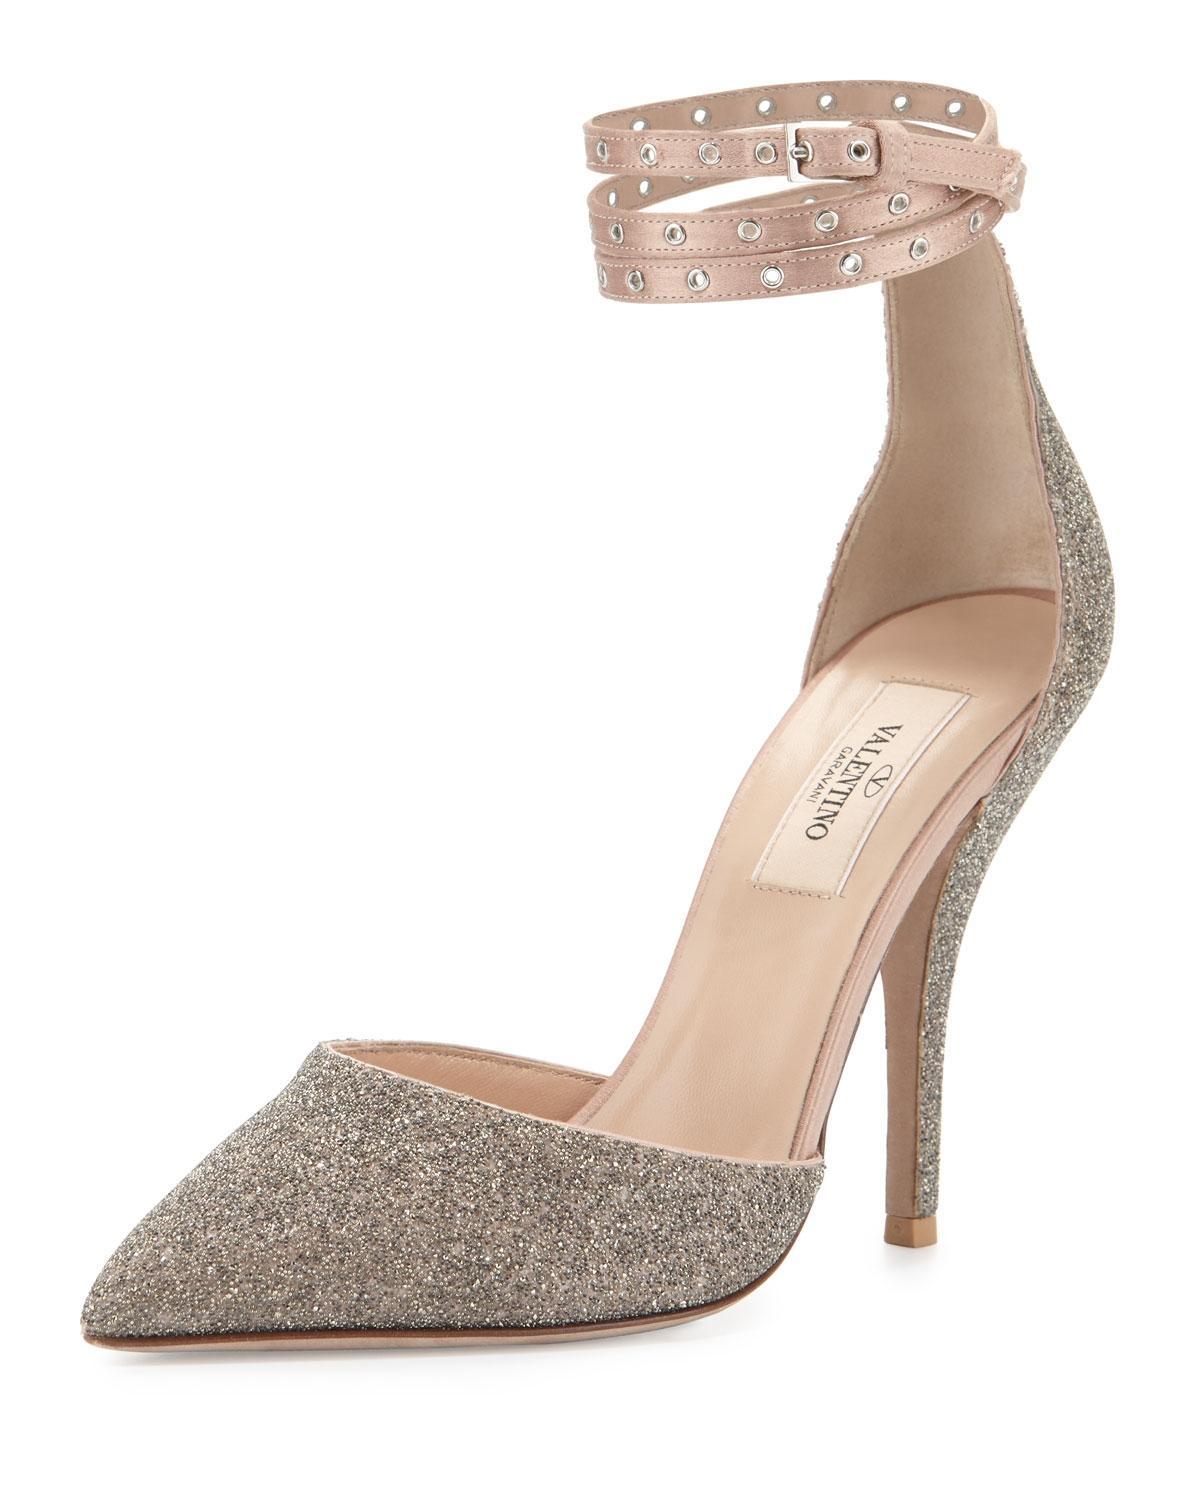 Valentino Beige Glitter Pointed-toe Ankle-wrap Pumps Size US 7.5 Regular (M, B)